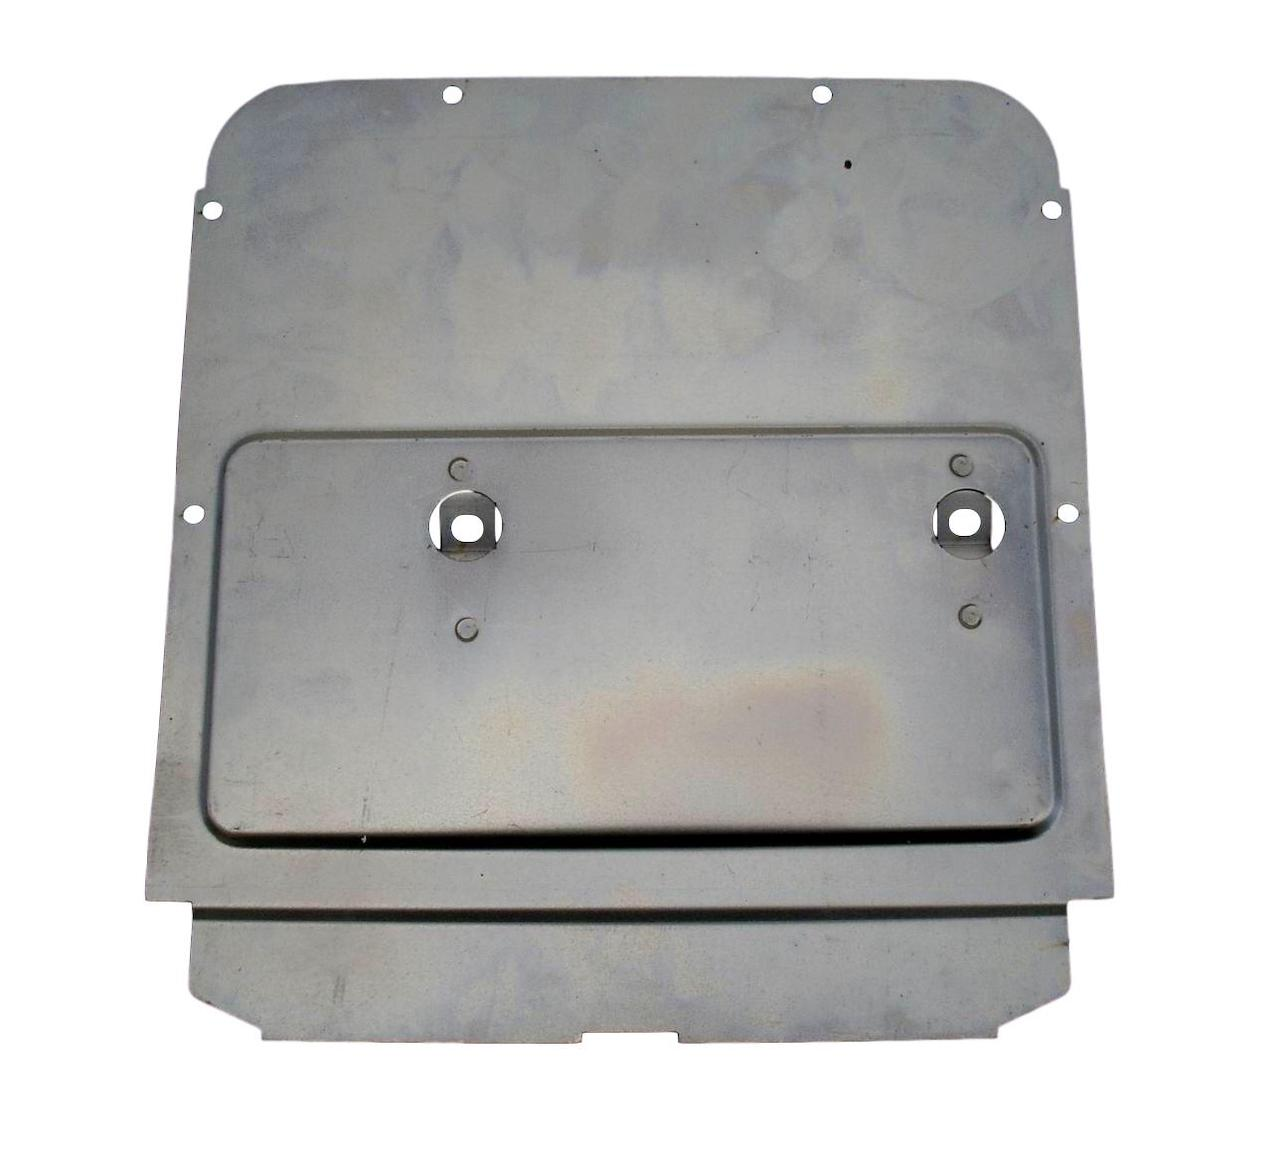 1955 1956 1957 Chevy 2-D Sedan RH Rear Quarter Access Hole Cover